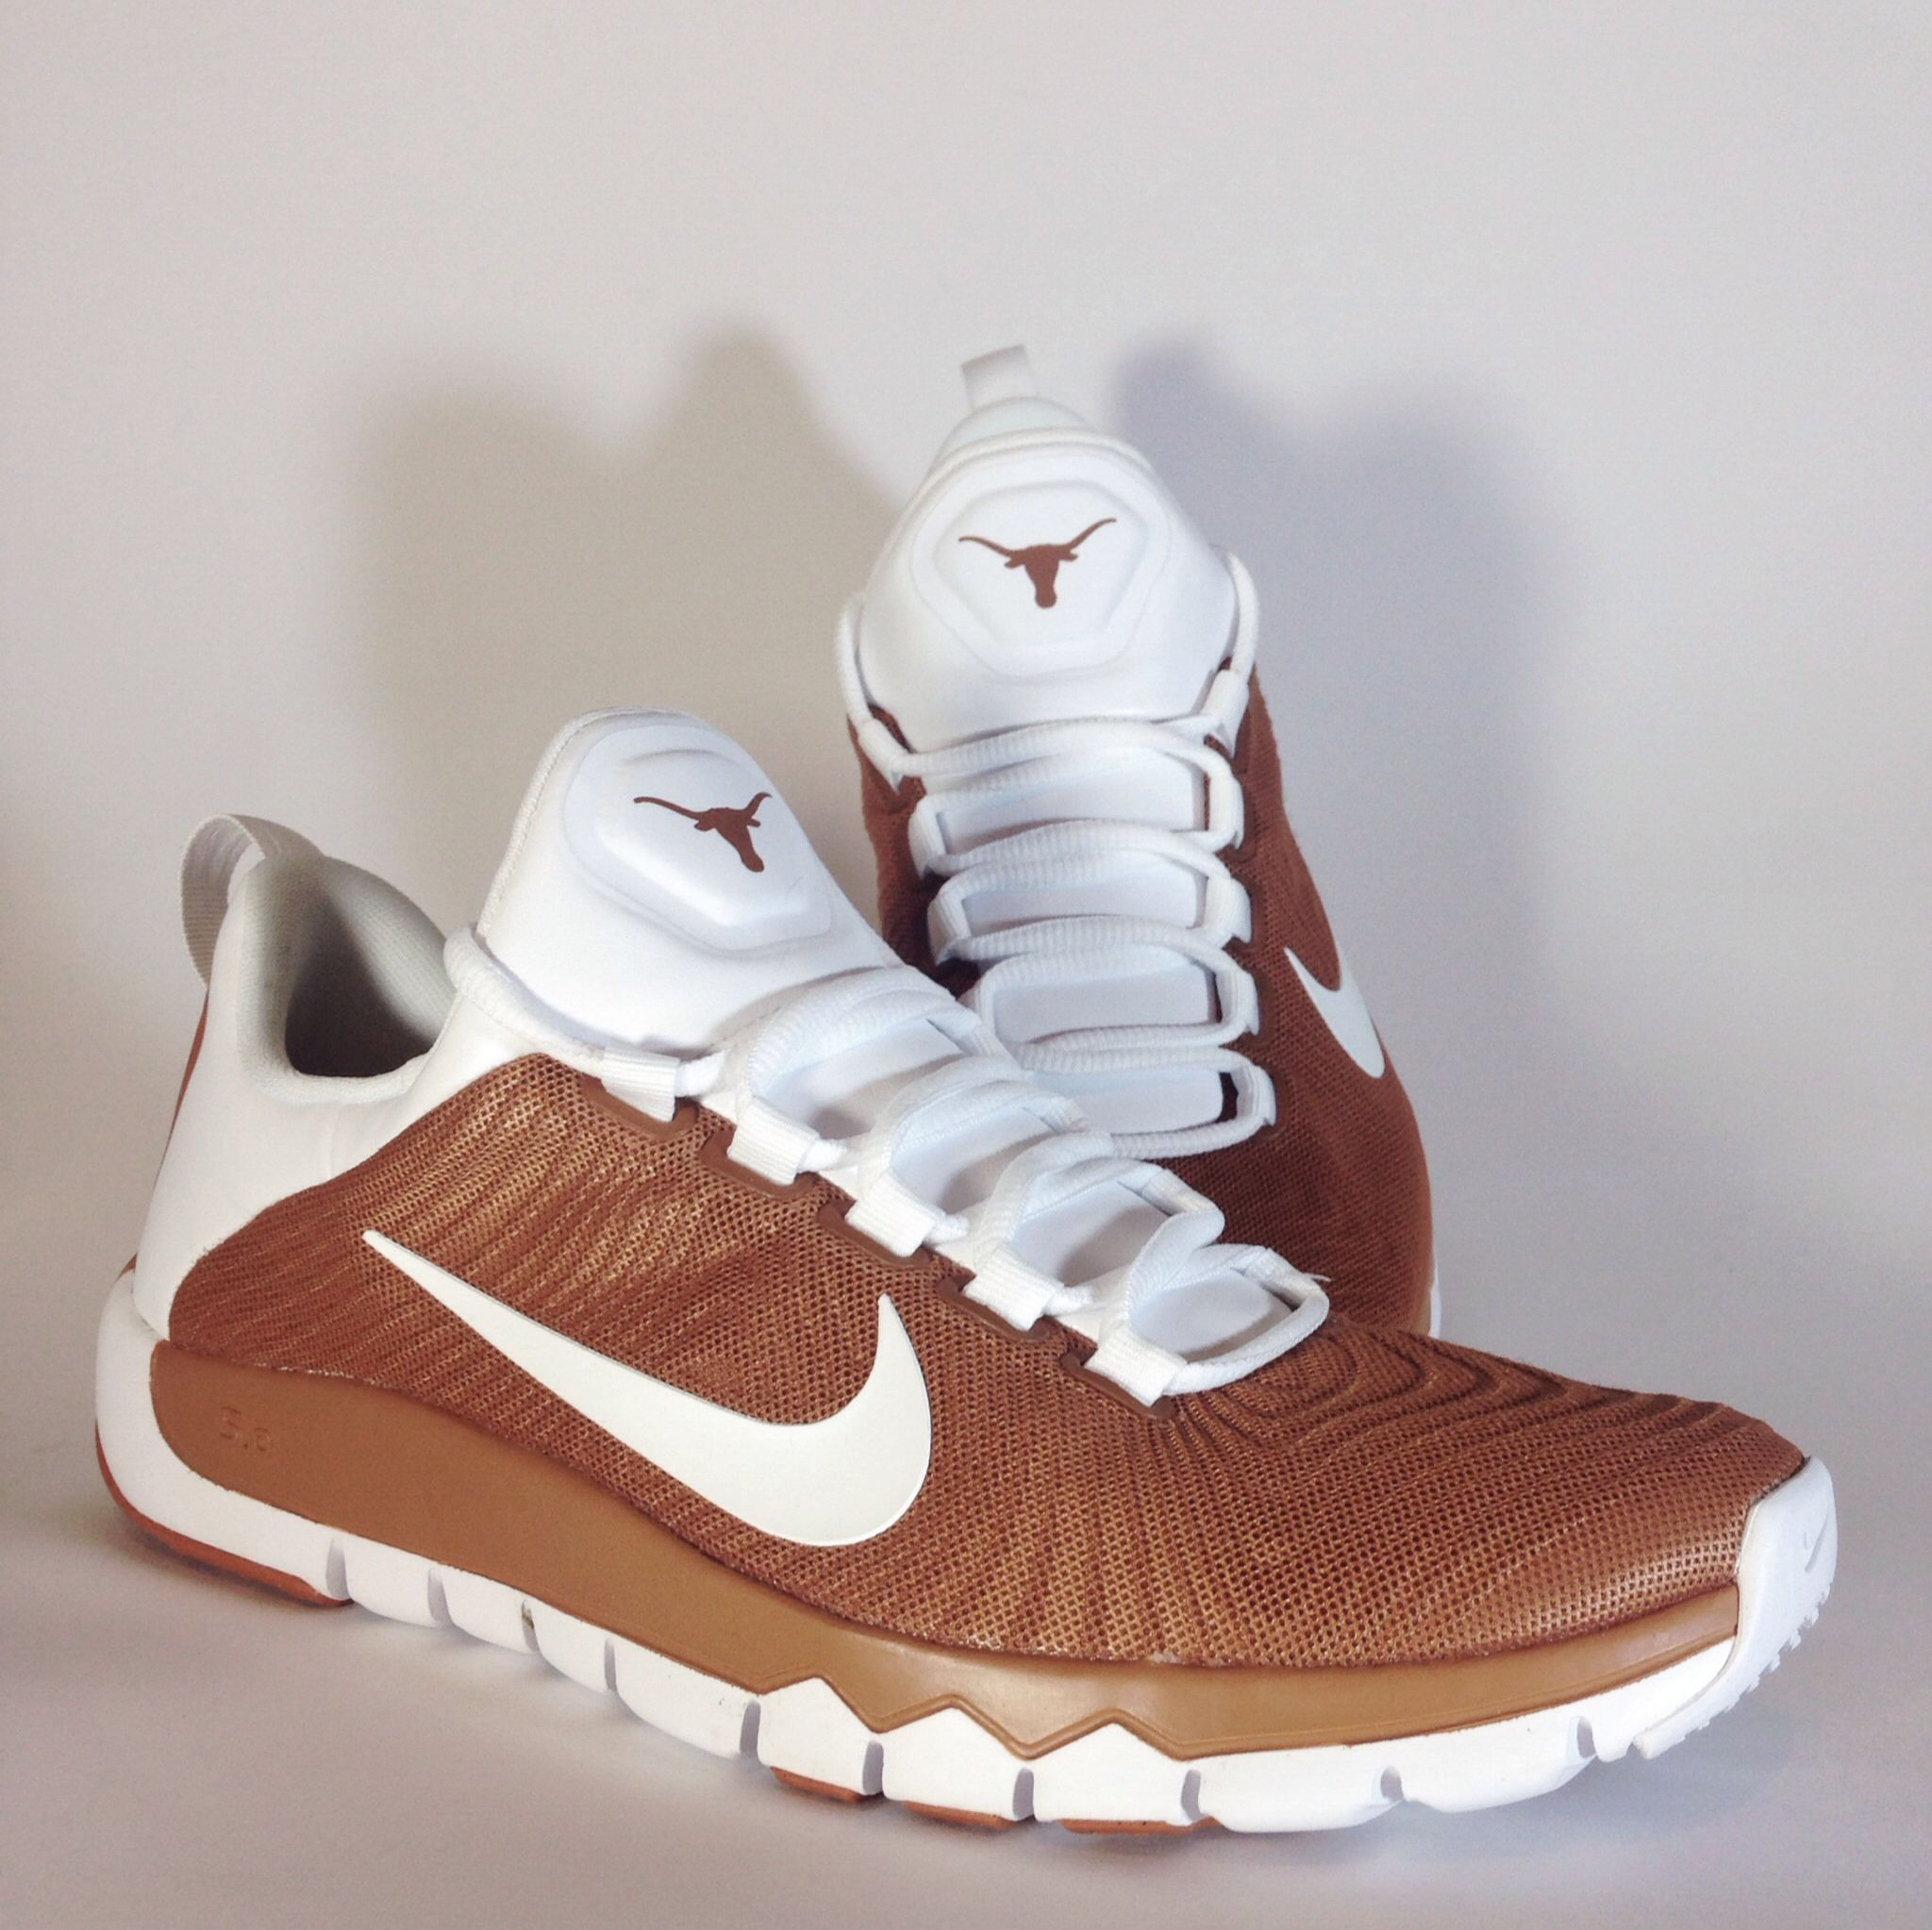 reputable site efa80 b81e3 Texas Longhorns Nike Free Trainer 5.0 TB